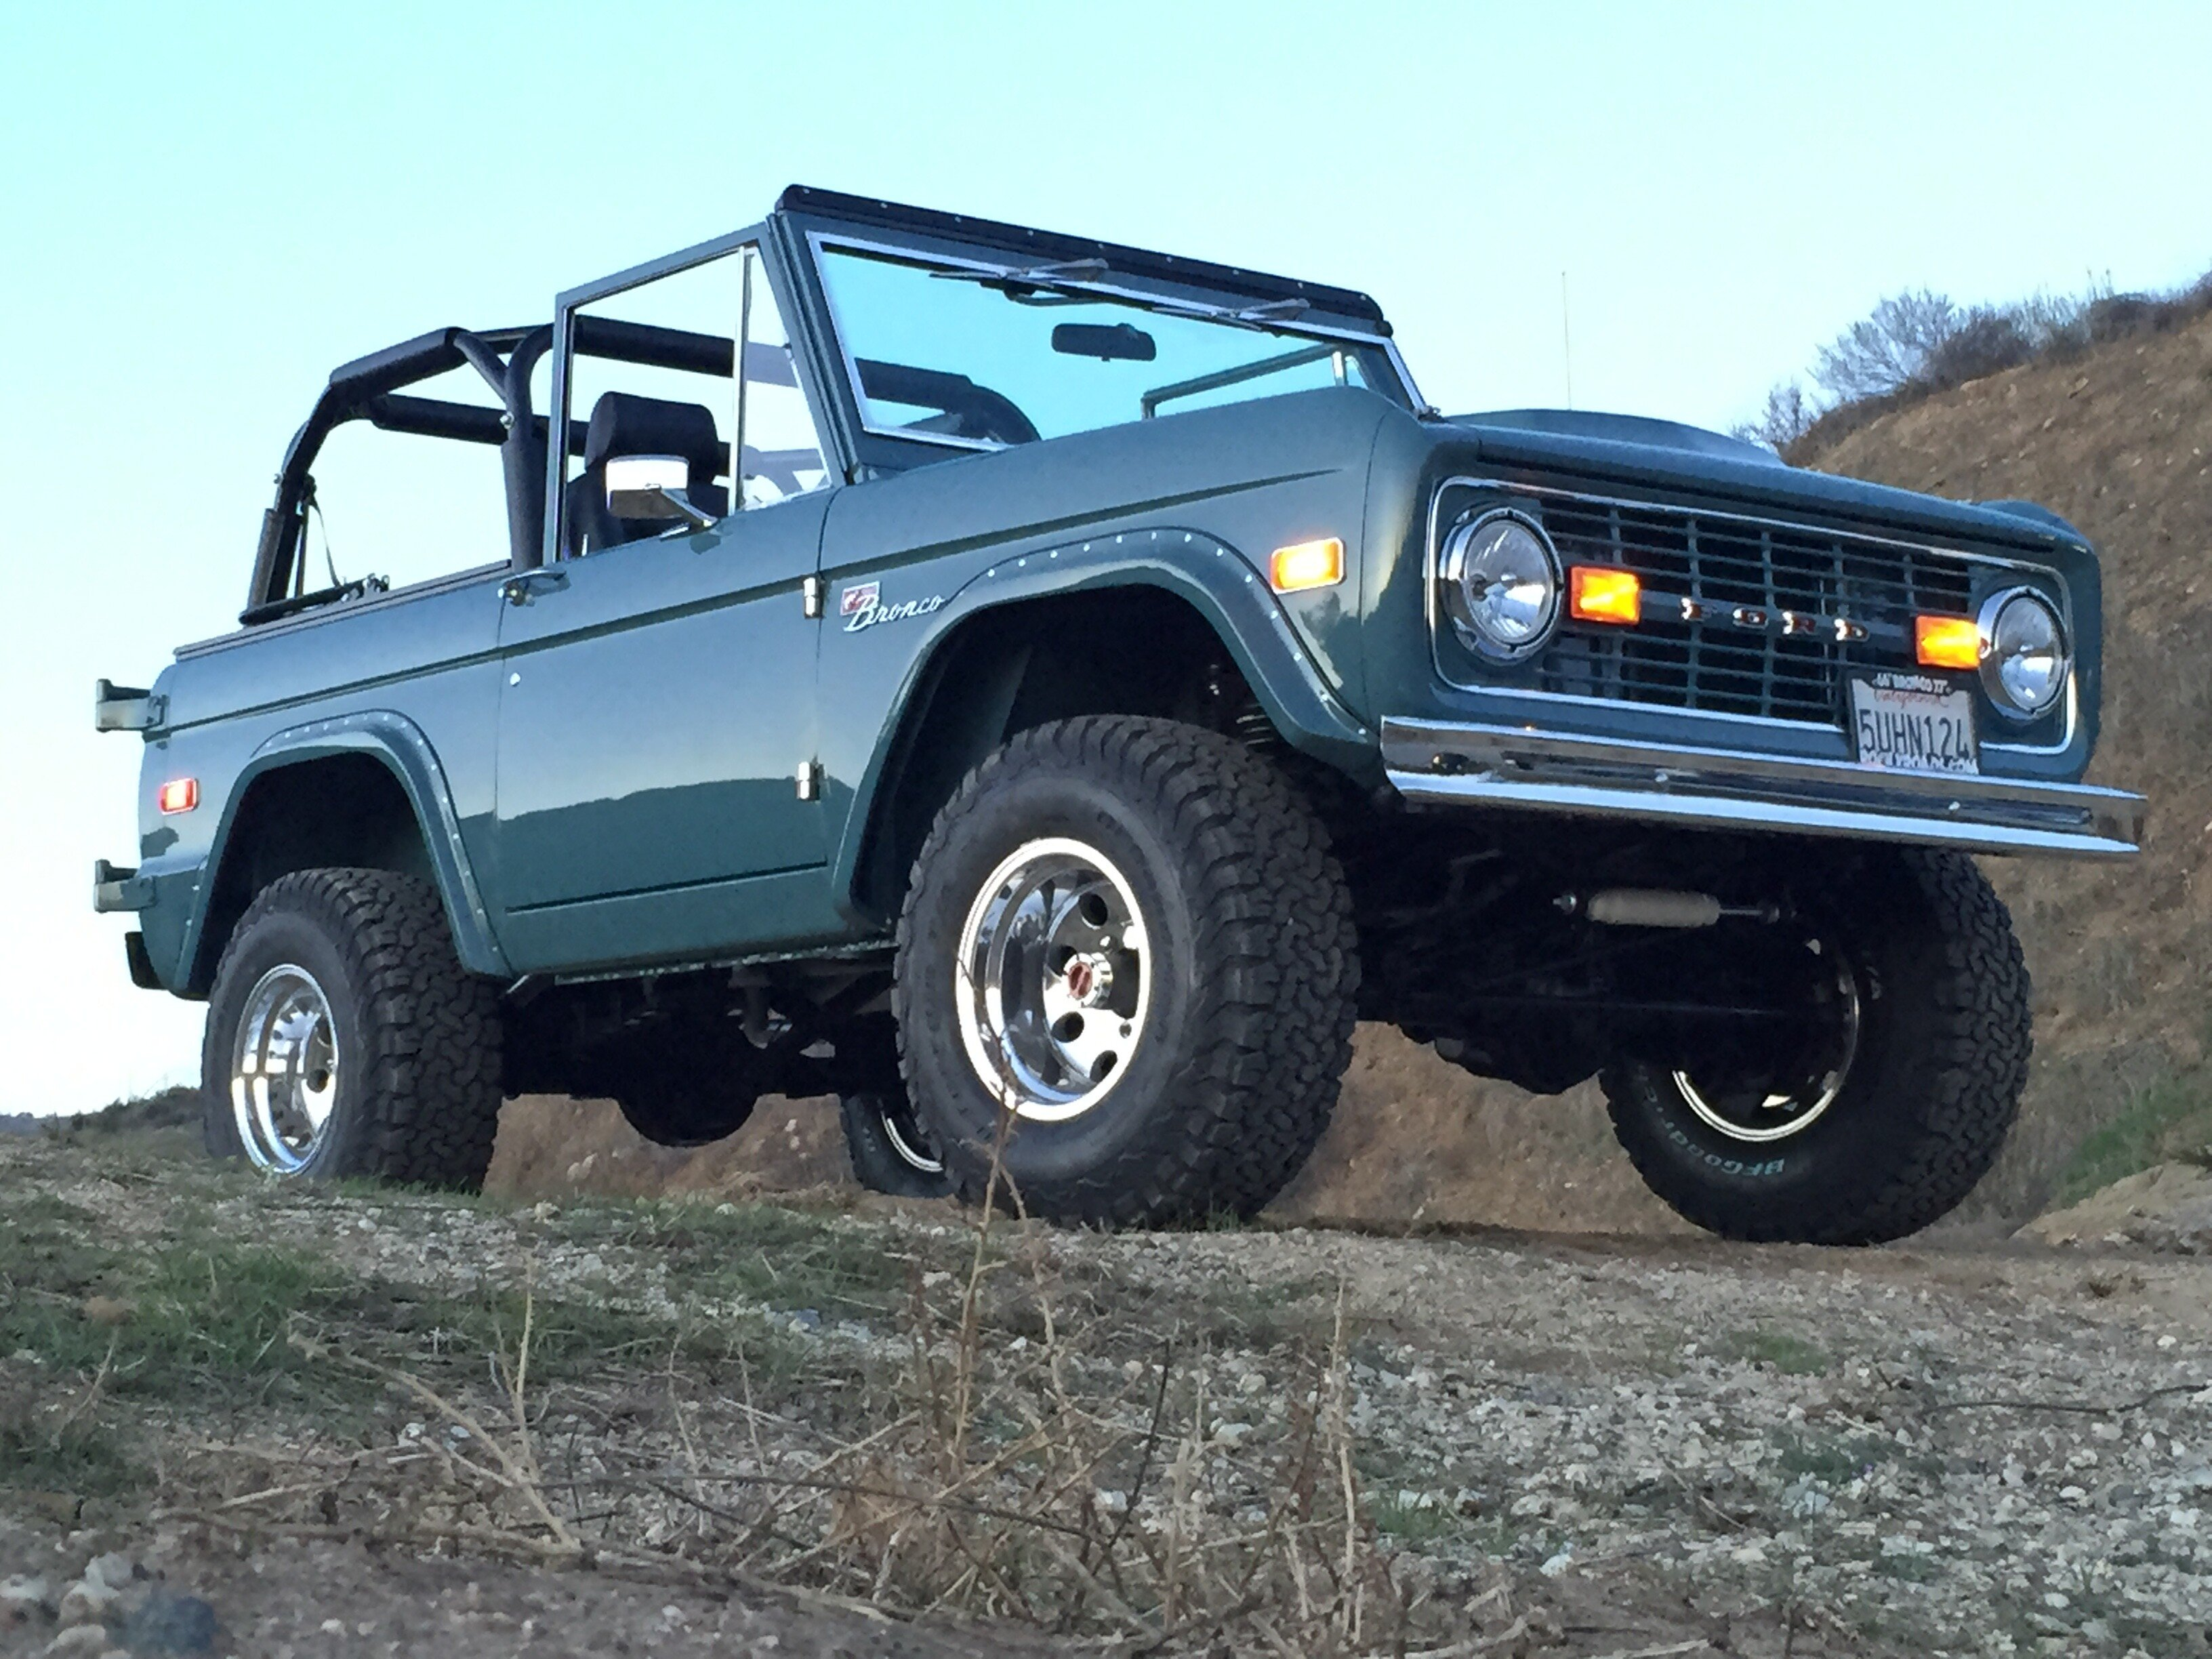 1970 Ford Bronco Classics For Sale On Autotrader Mallory Ignition Wiring Diagram Pro 9000